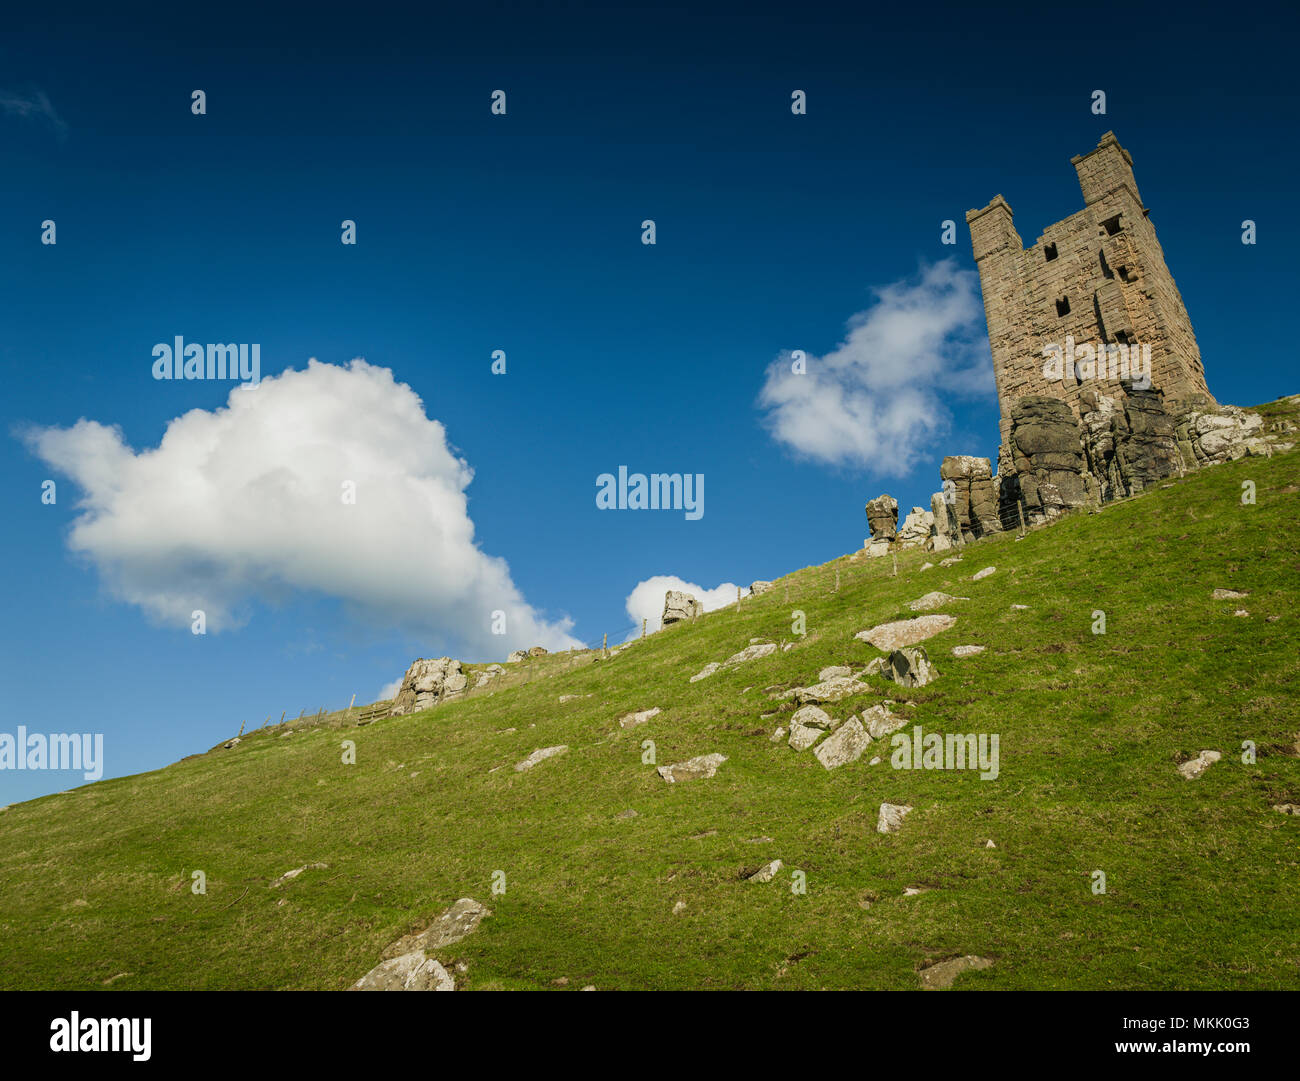 Lilburn Tower, Dunstanburgh Castle, Northumberland, UK. Stock Photo